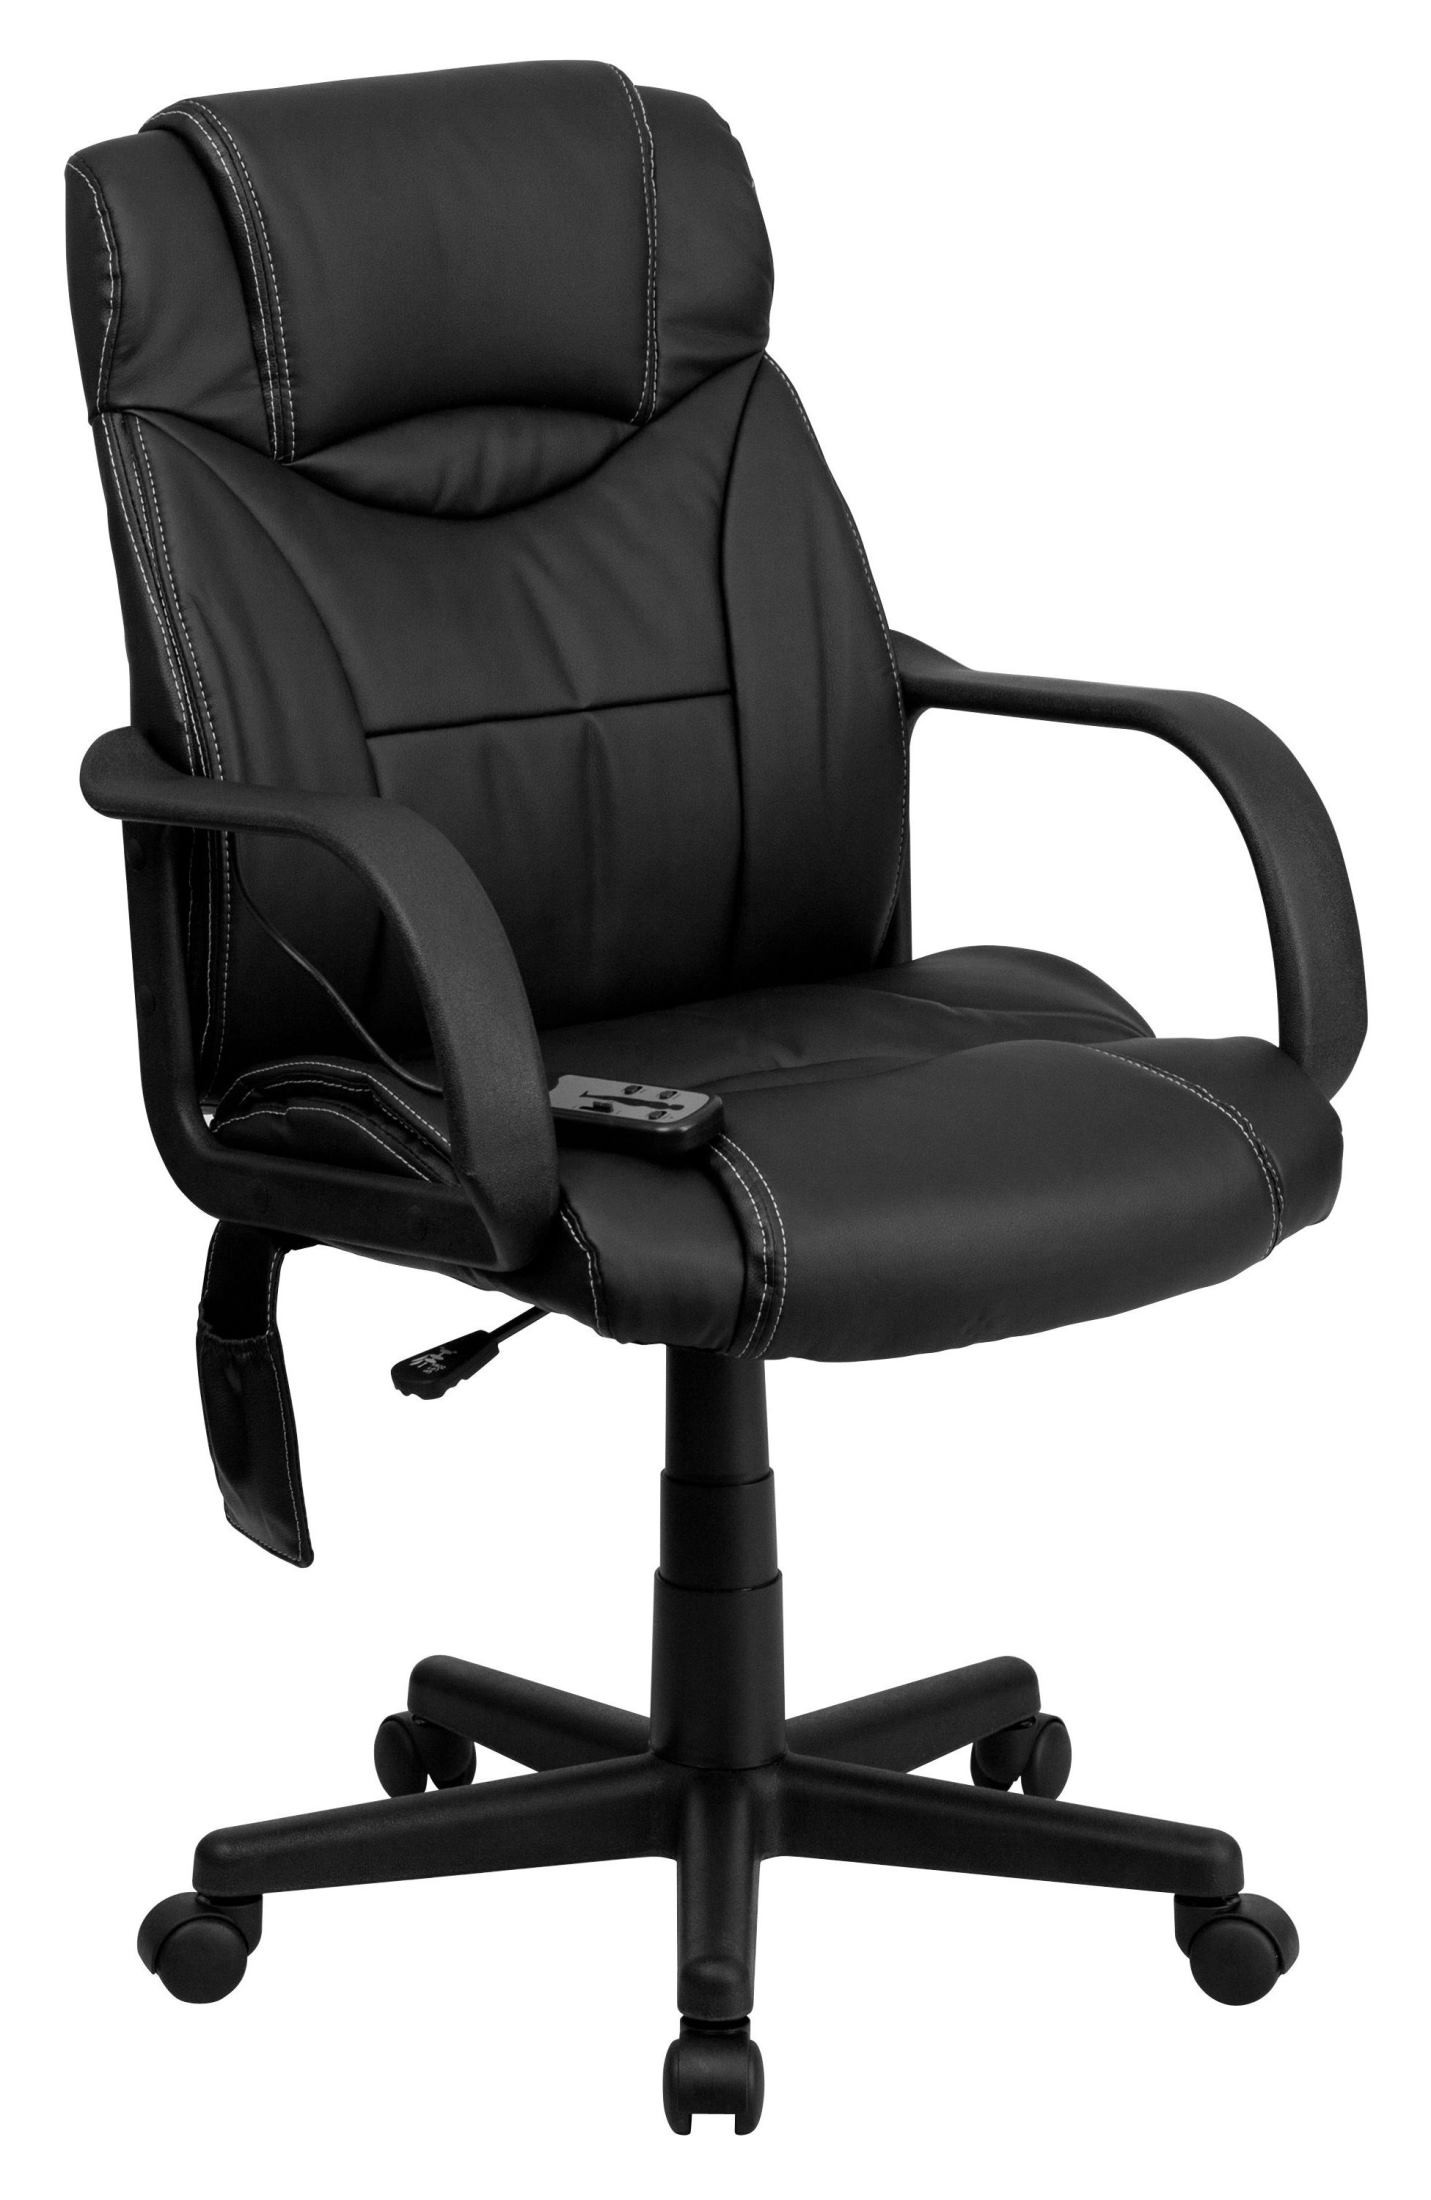 coleman lumbar quattro chair hello kitty high back massaging black executive office from